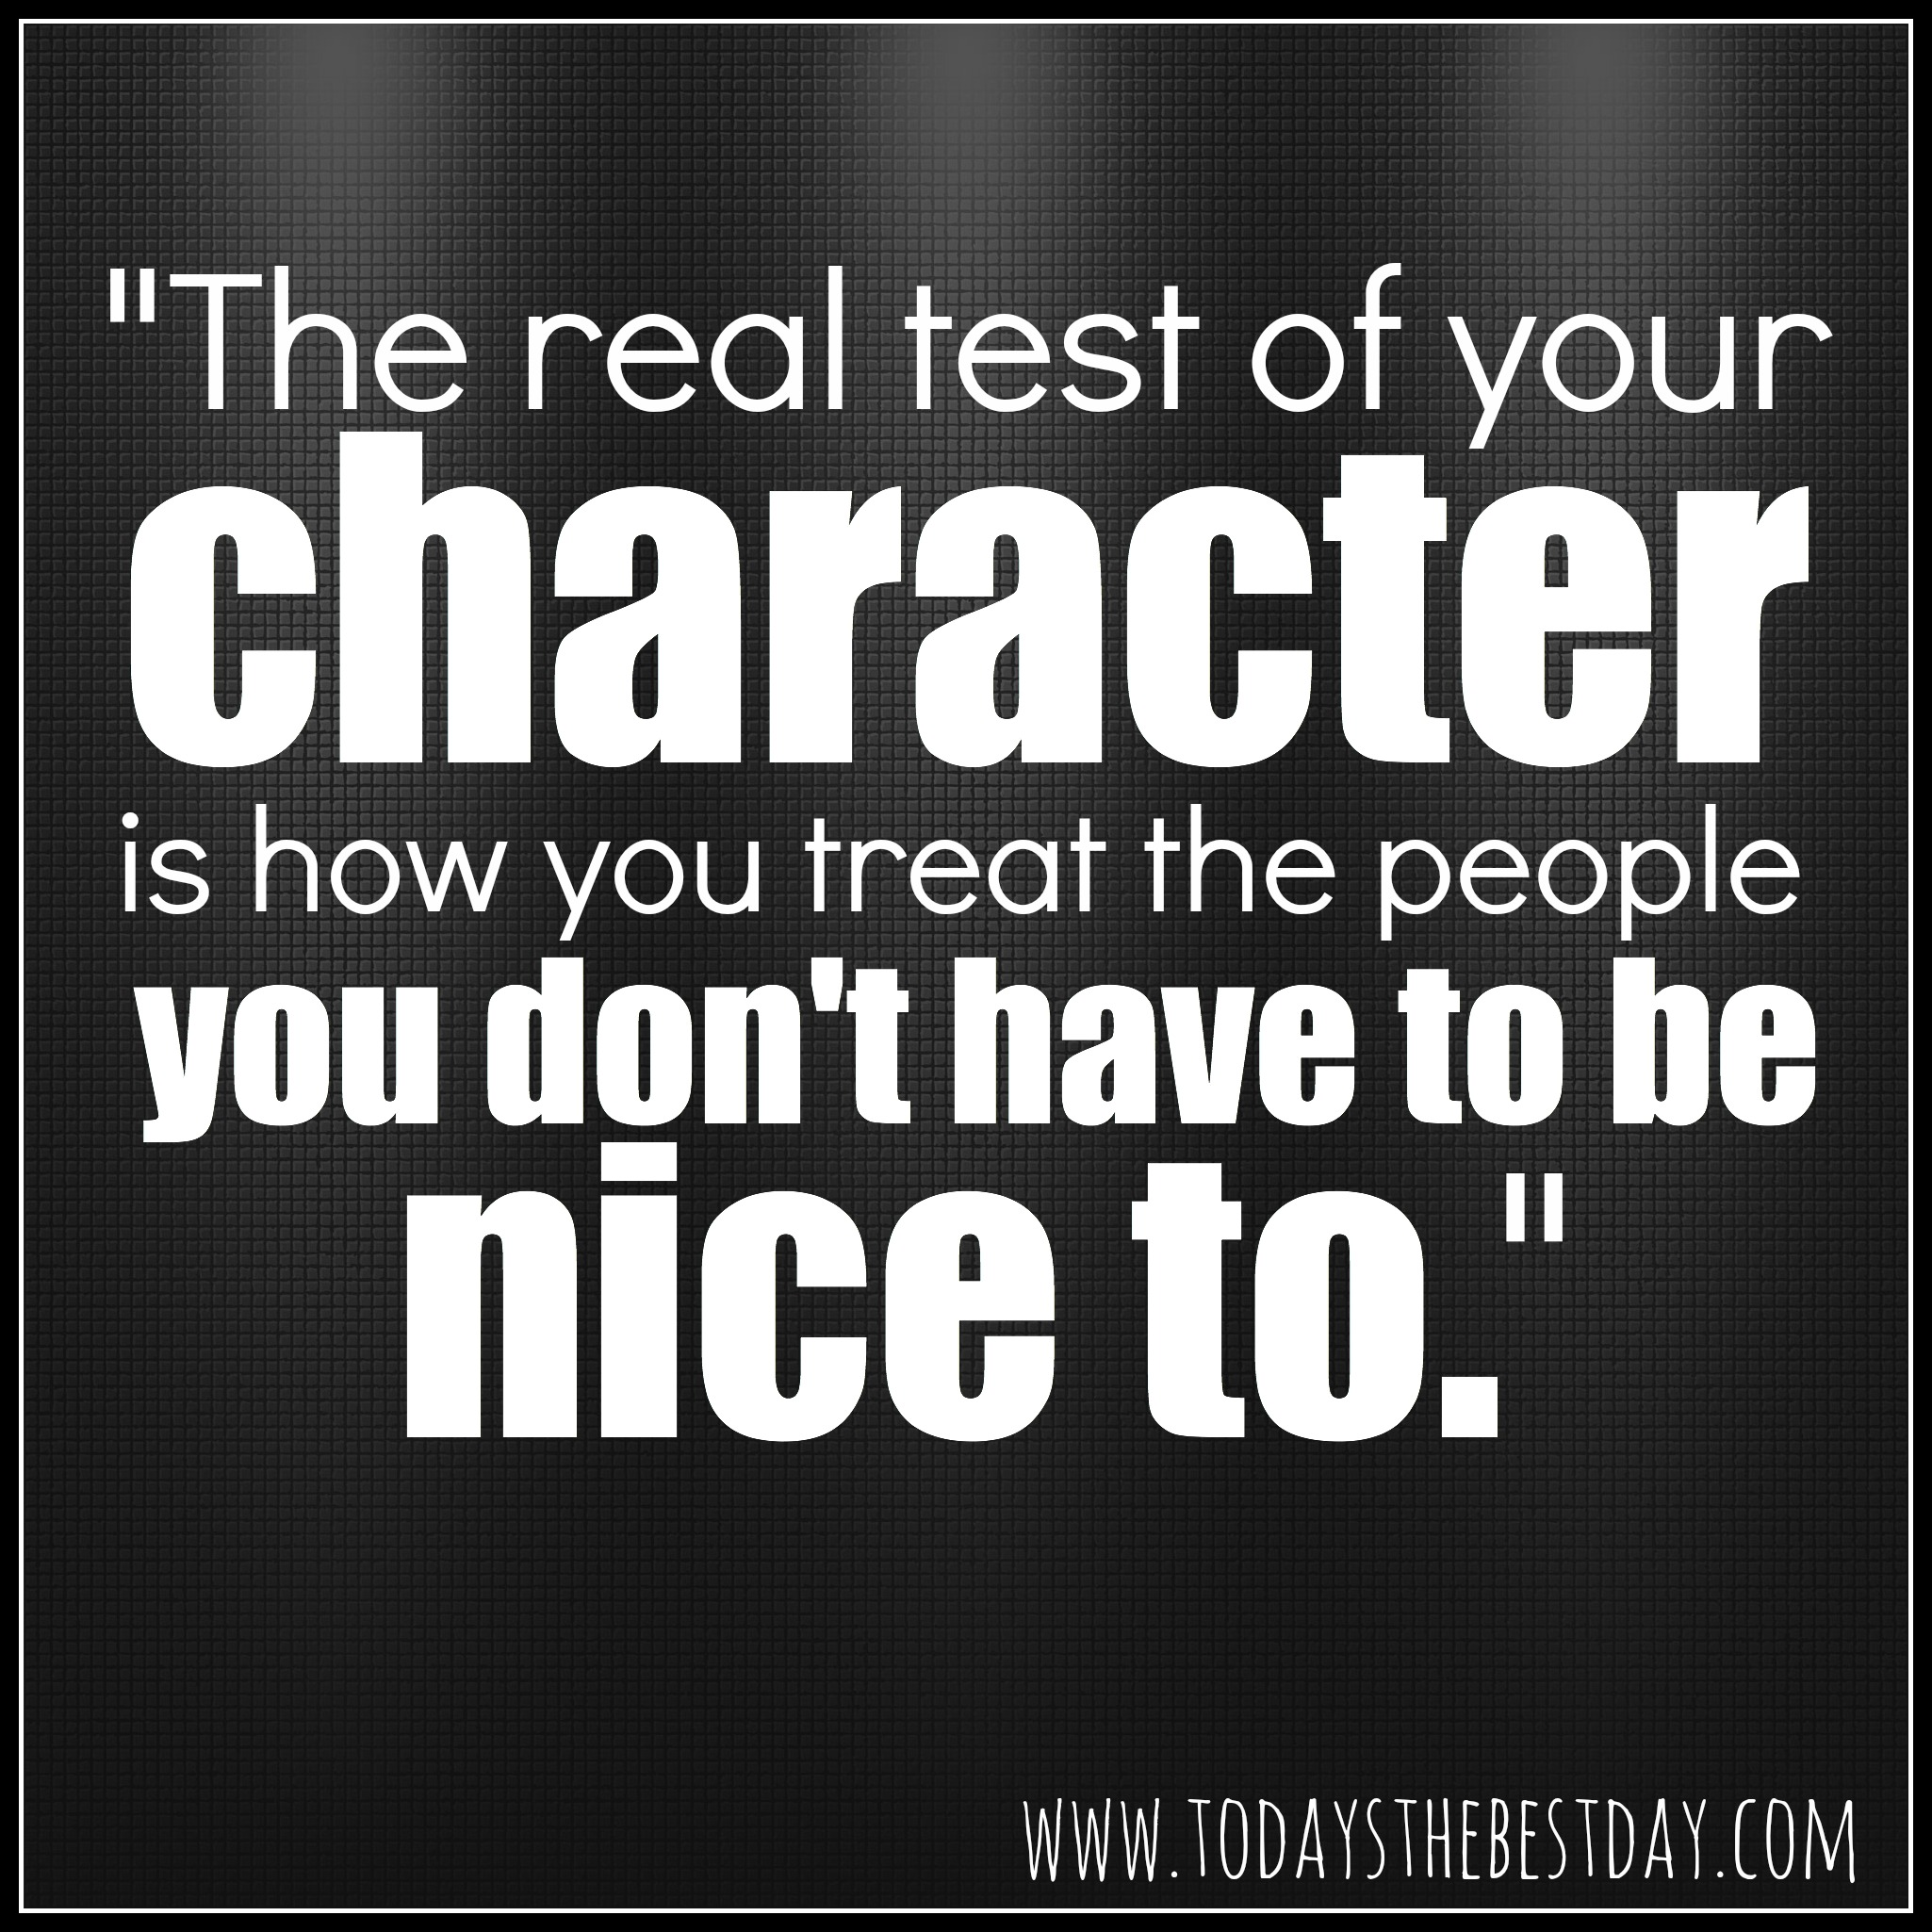 https://i1.wp.com/www.todaysthebestday.com/wp-content/uploads/2014/03/The-real-test-of-your-character-is-how-you-treat-the-people-you-dont-have-to-be-nice-to.jpg